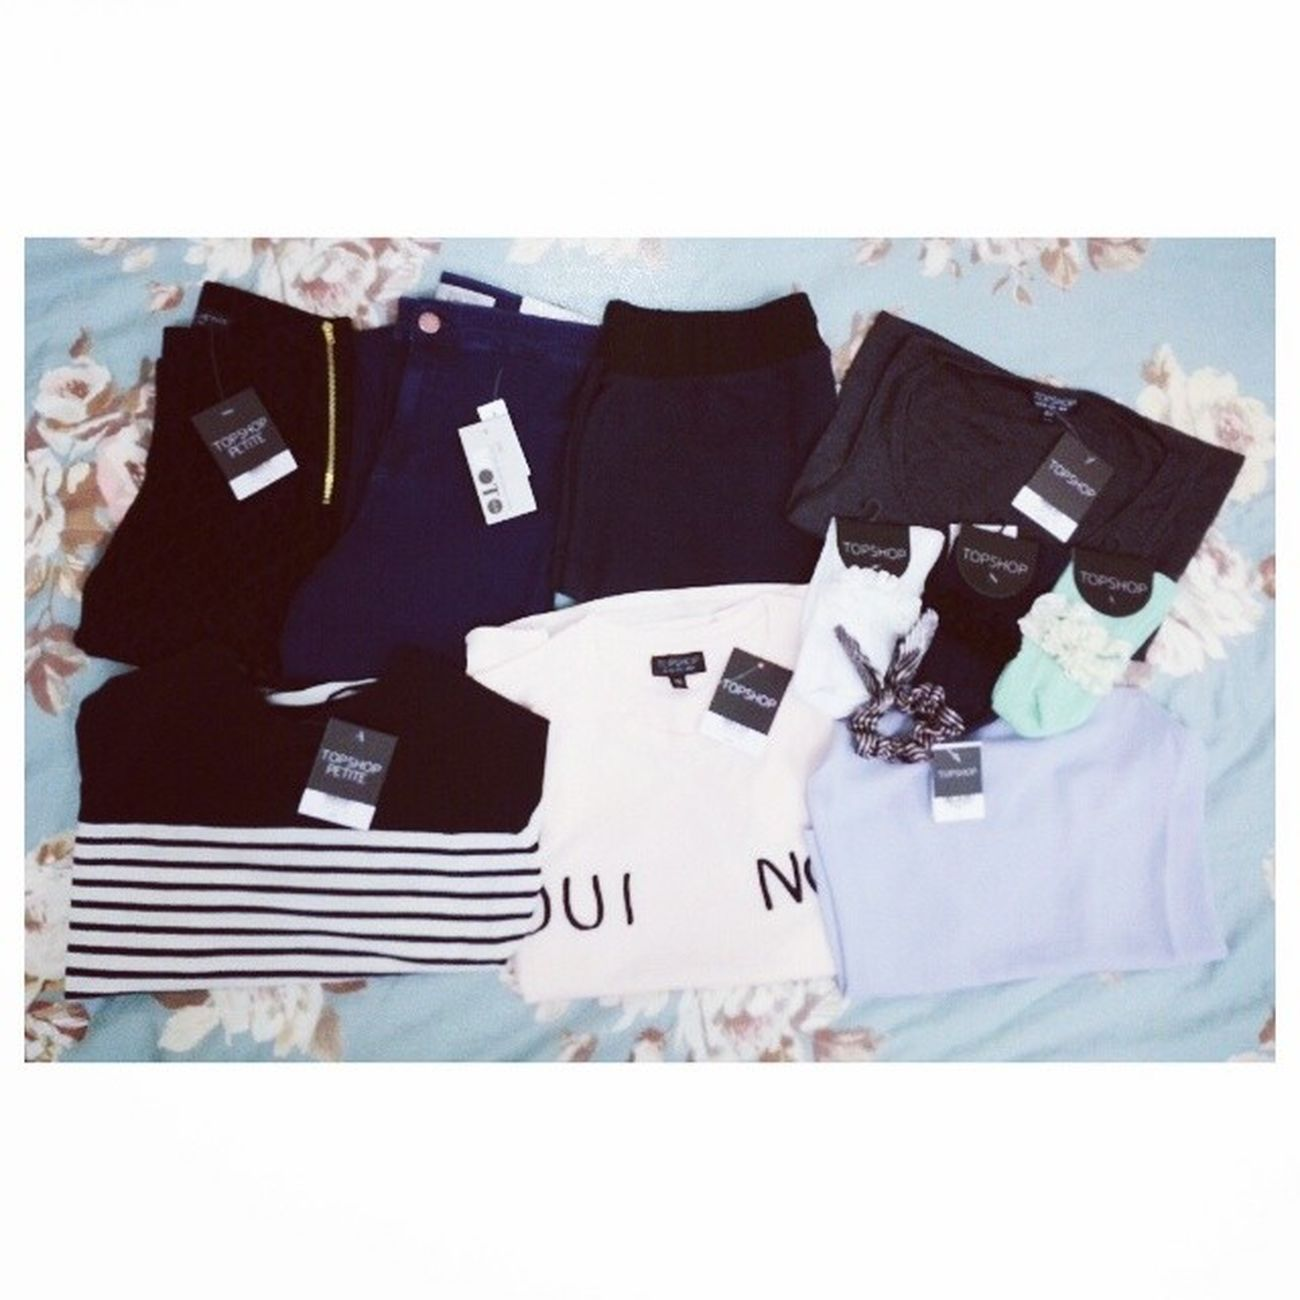 TOPSHOP HAUL. Topshop Shoppingaddiction Whatissaving